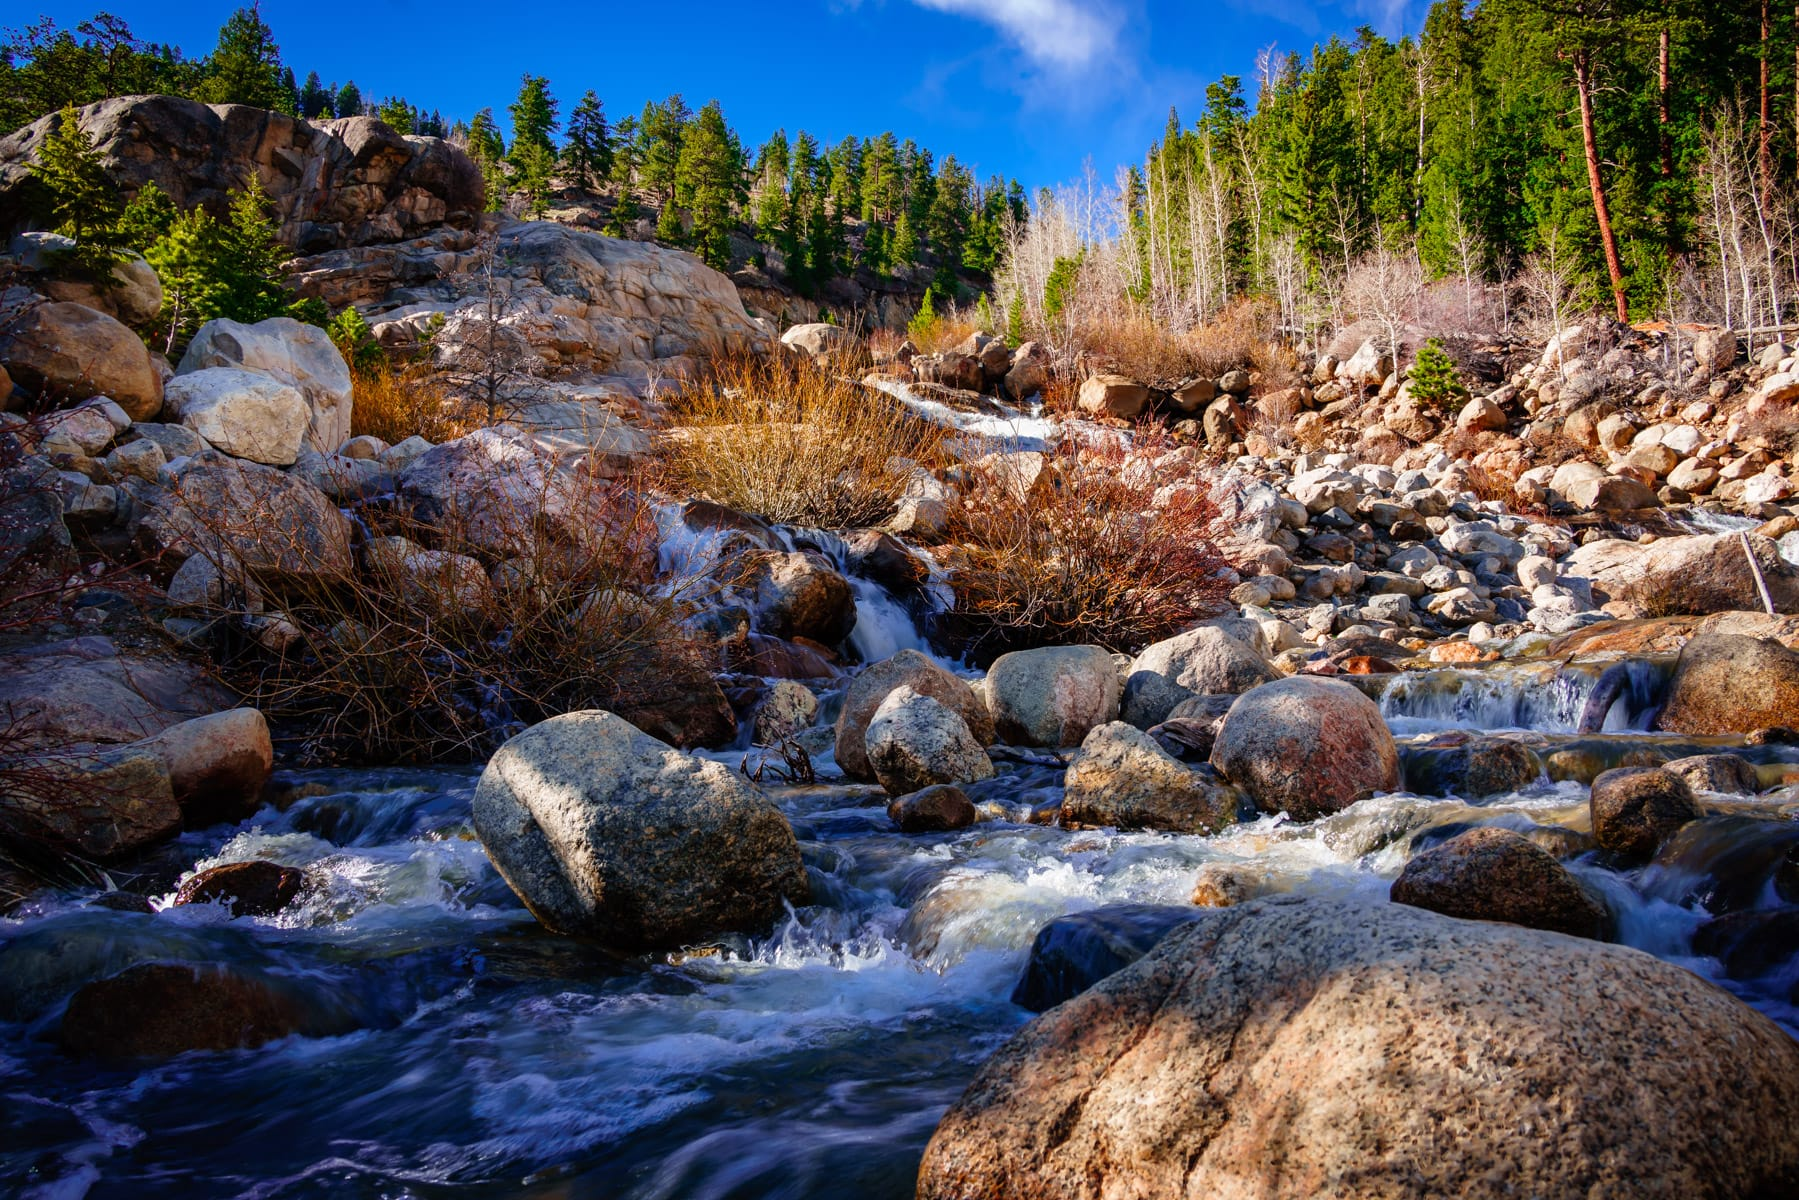 The Roaring River cascades down a rocky path at Colorado's Rocky Mountain National Park.